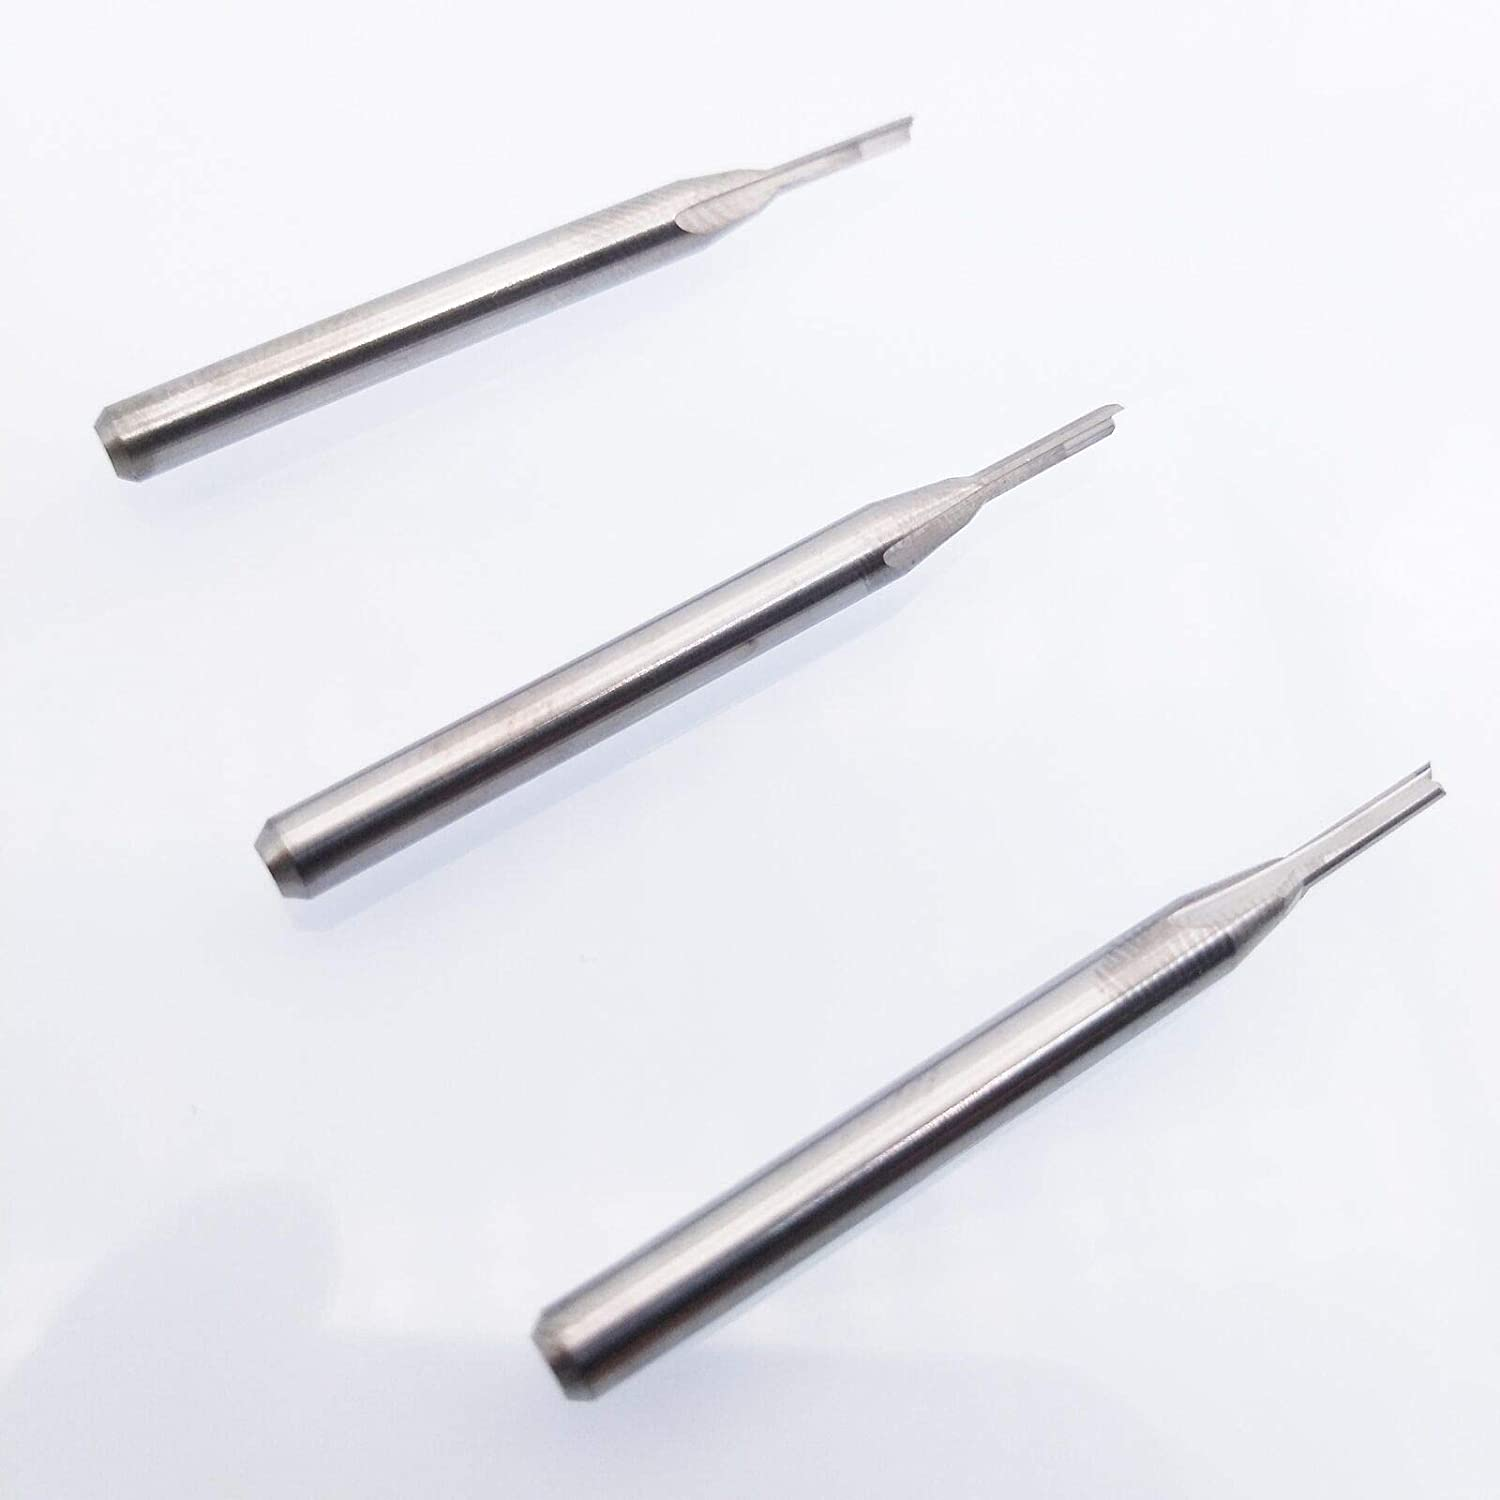 3x Double Flute Straight Endmill Tool CNC Router Bits SD1//8 CED1.5mm CEL7mm